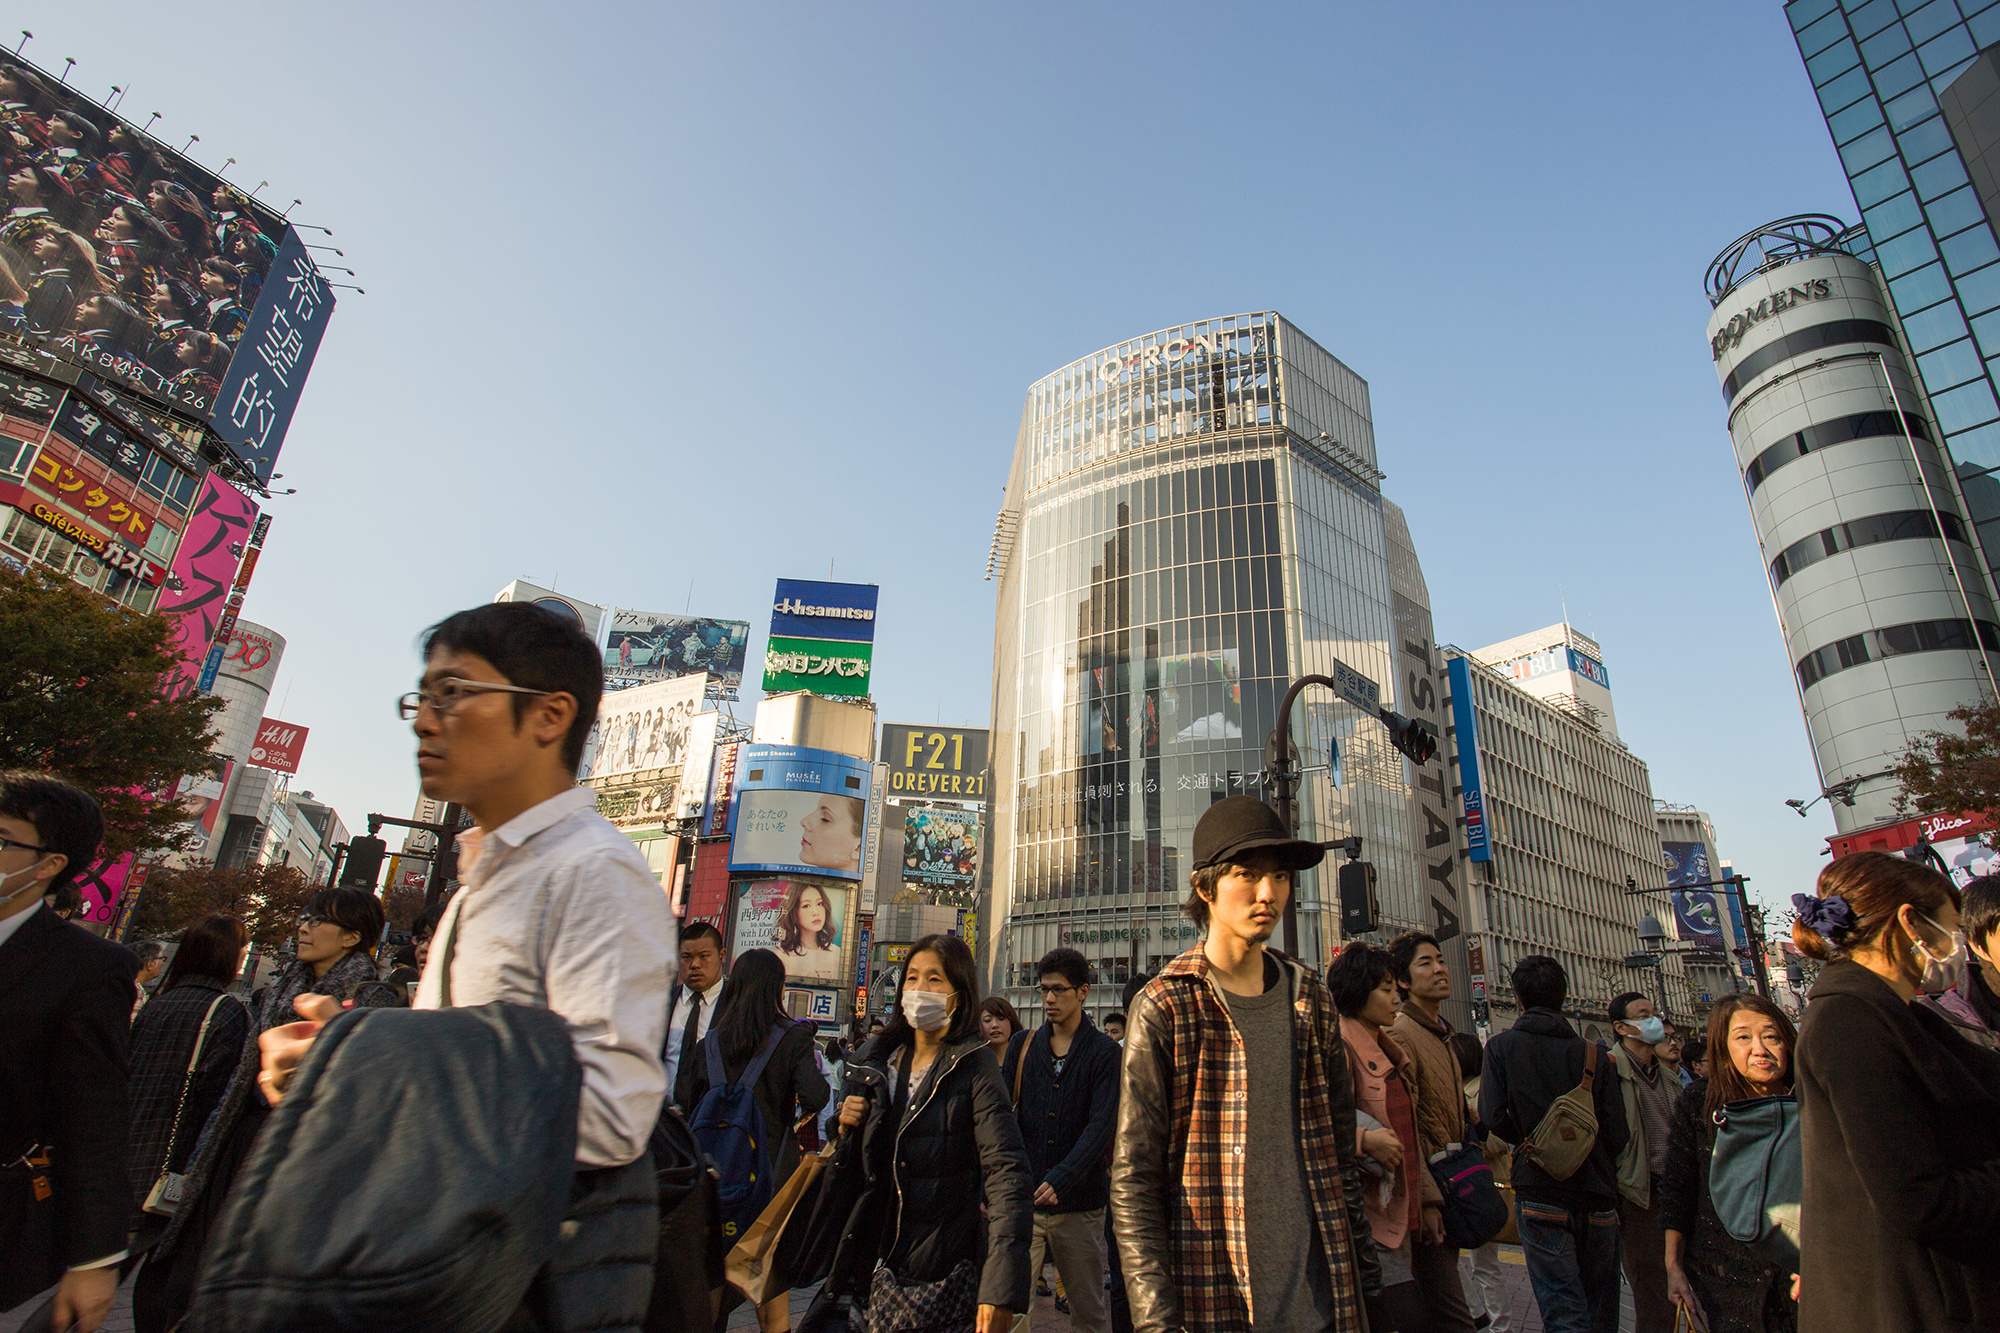 Japan is open for startups, but assimilation may prove difficult